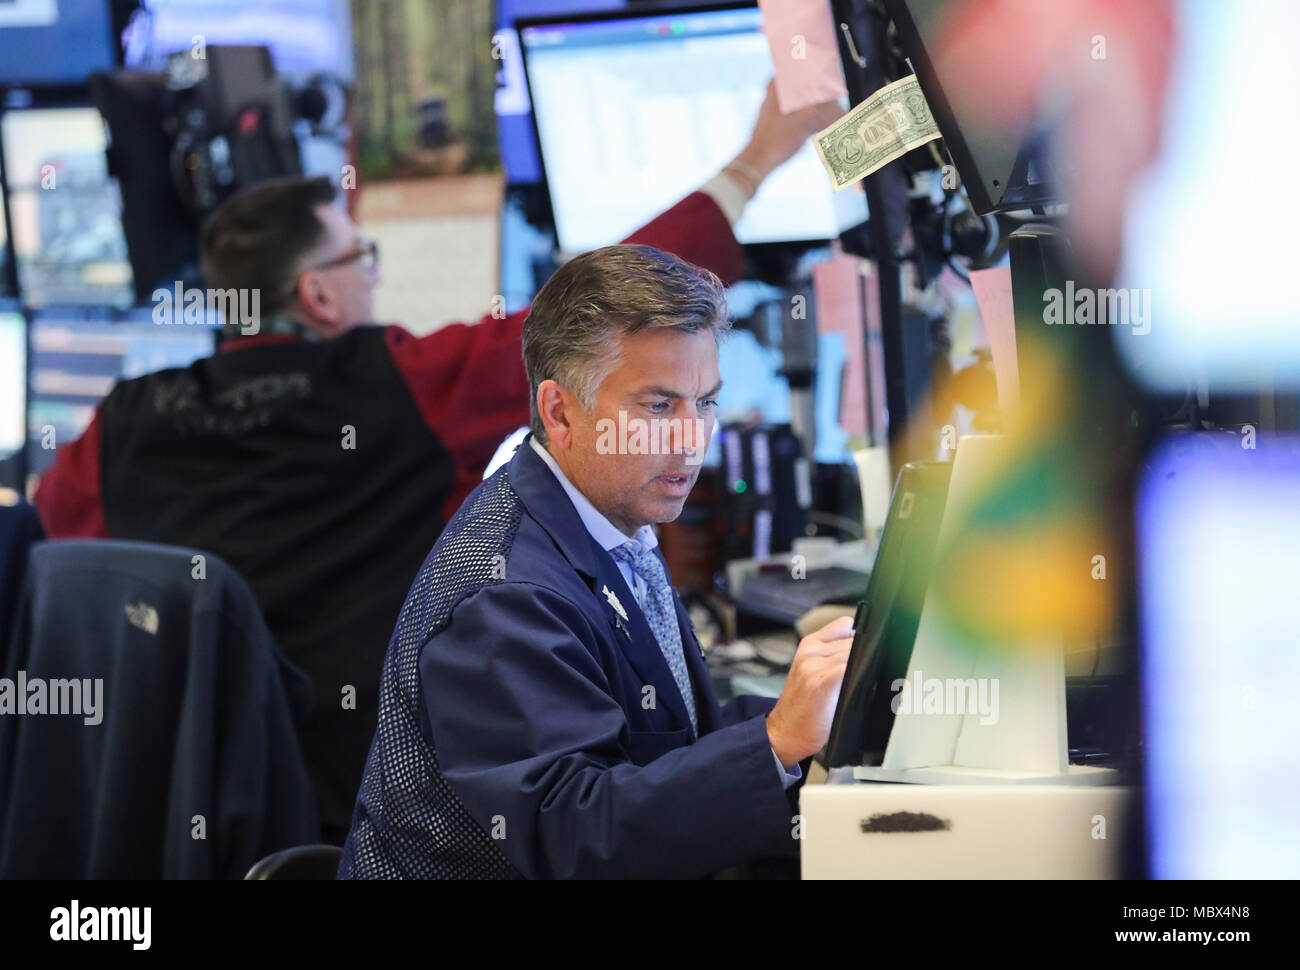 New York, USA. 11th Apr, 2018. Traders work at the New York Stock Exchange in New York, the United States, April 11, 2018. U.S. stocks closed lower on Wednesday. The Dow decreased 0.90 percent to 24,189.45, and the S&P 500 erased 0.55 percent to 2,642.19, while the Nasdaq lost 0.36 percent to 7,069.03. Credit: Wang Ying/Xinhua/Alamy Live News Stock Photo